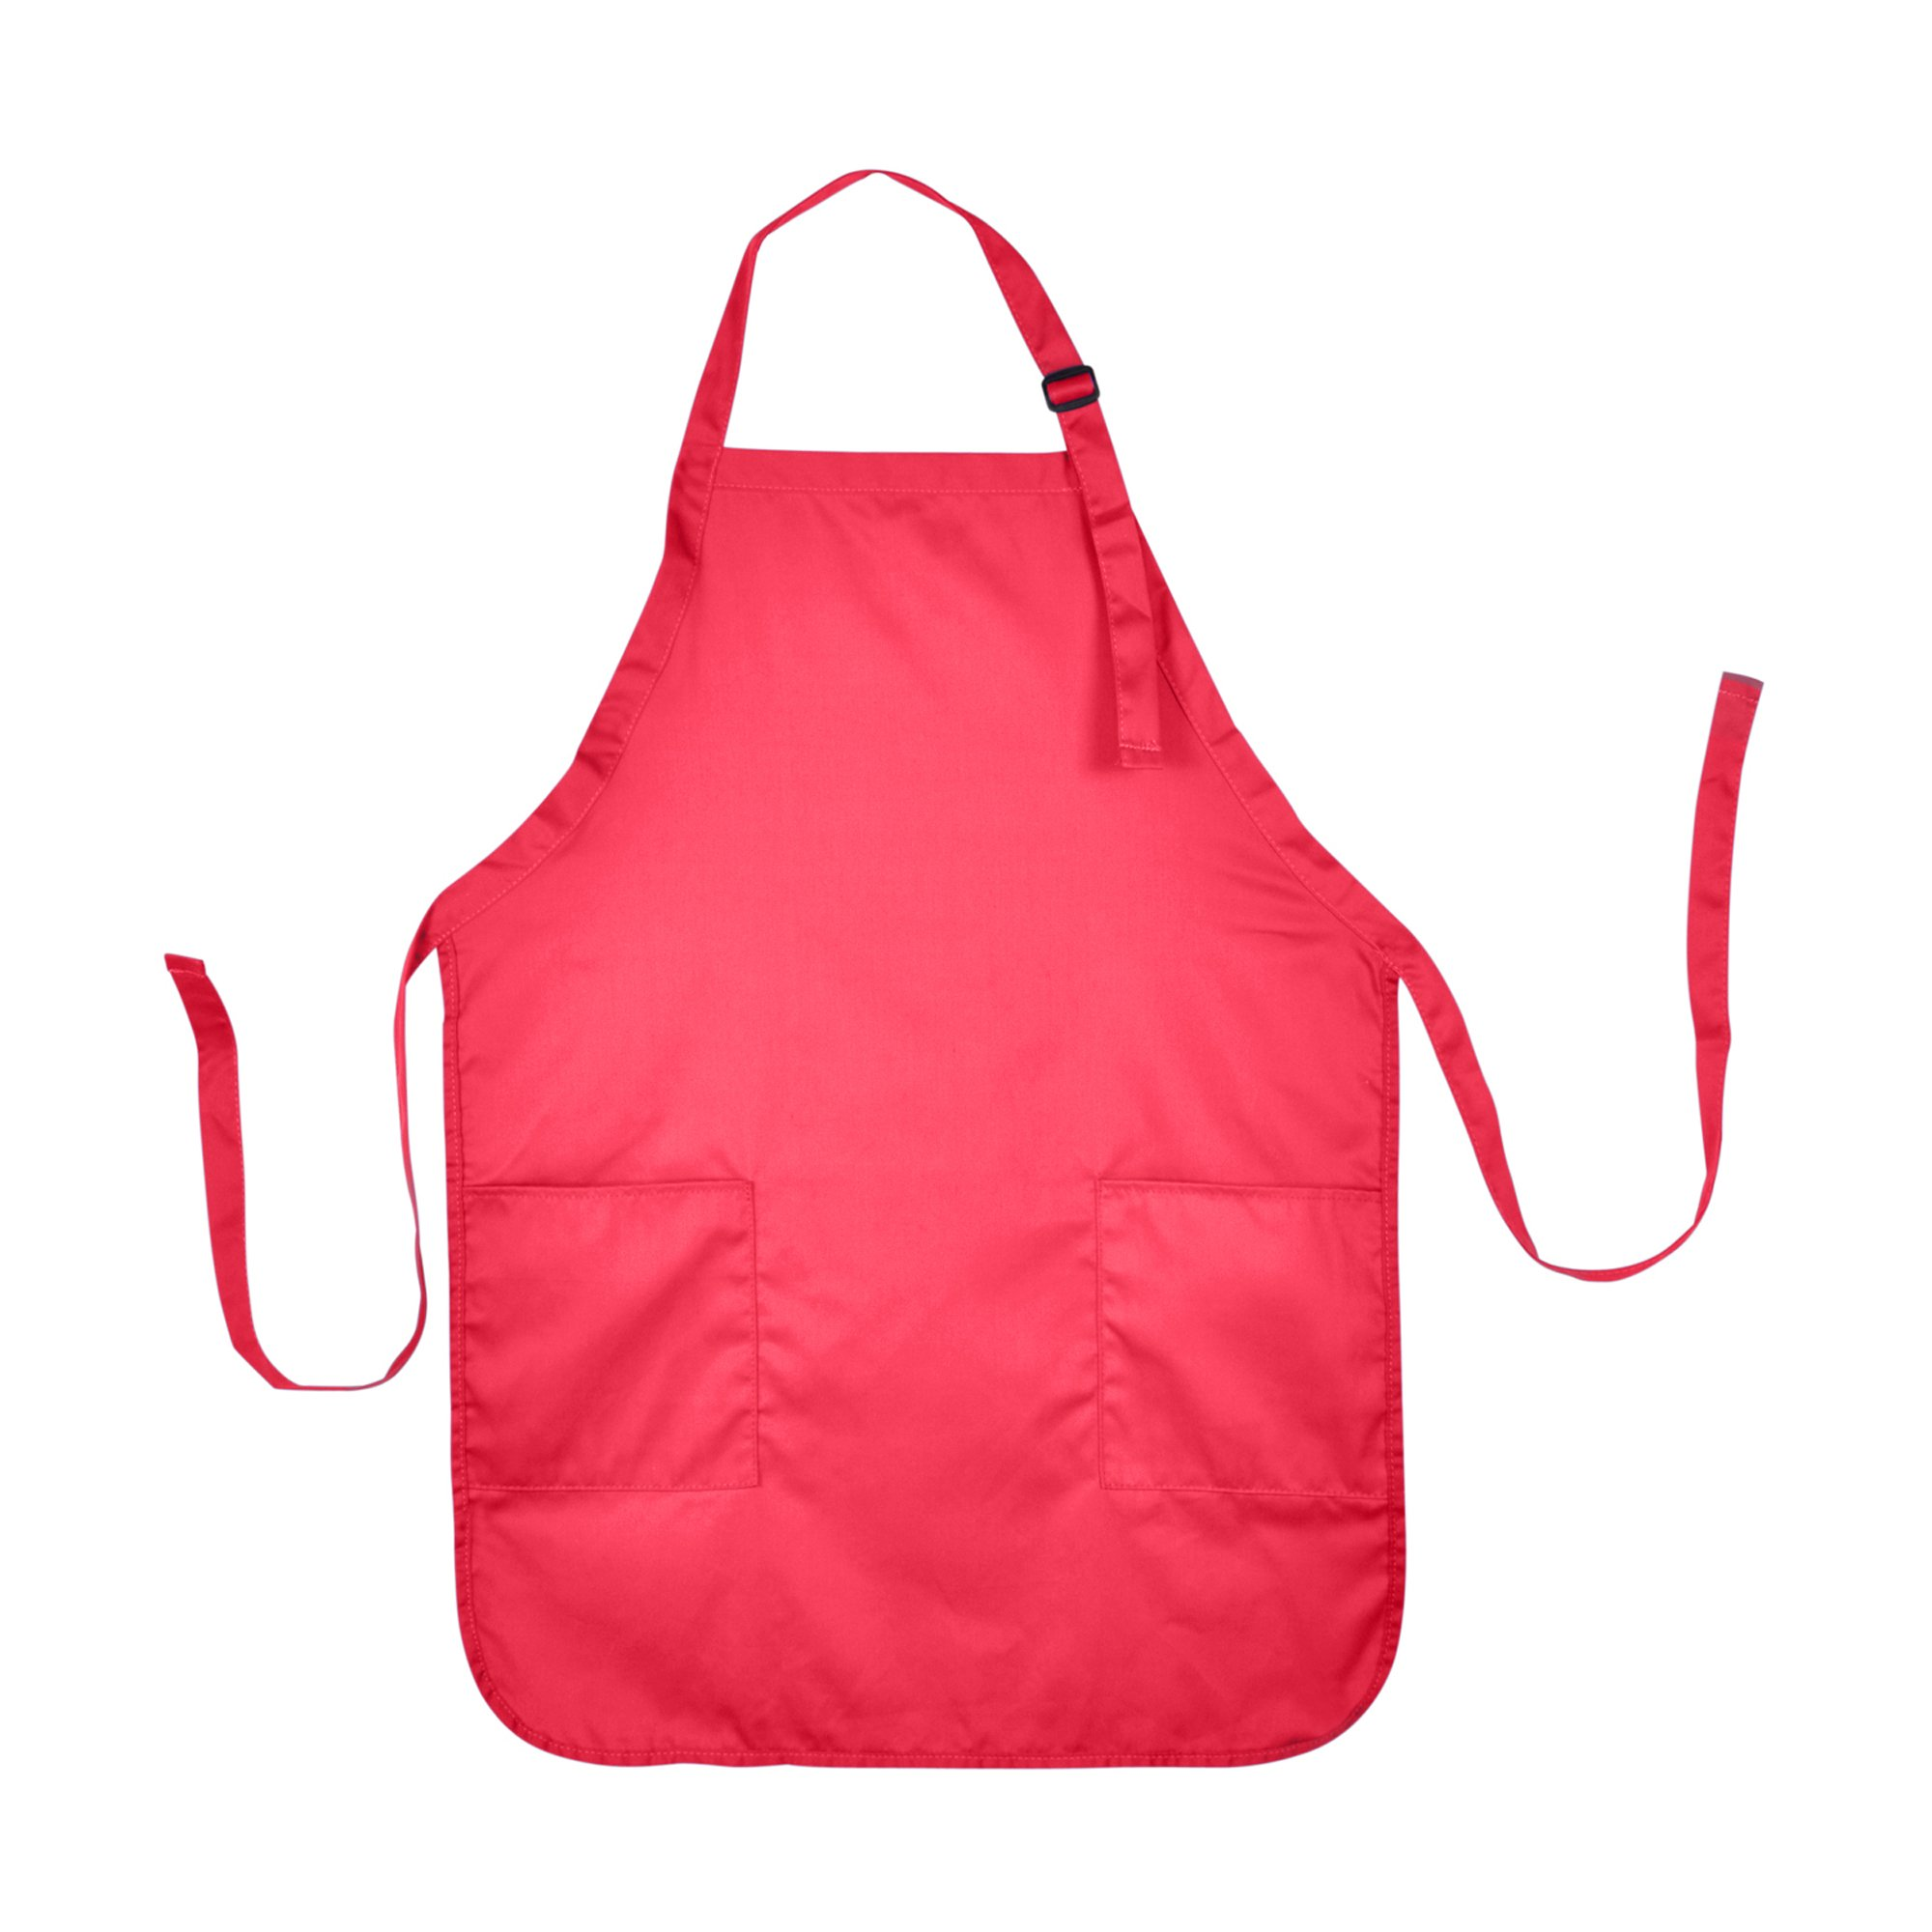 Apron Commercial Restaurant Home Bib Spun Poly Cotton Kitchen Aprons (2 Pockets) in Red 72 PACK